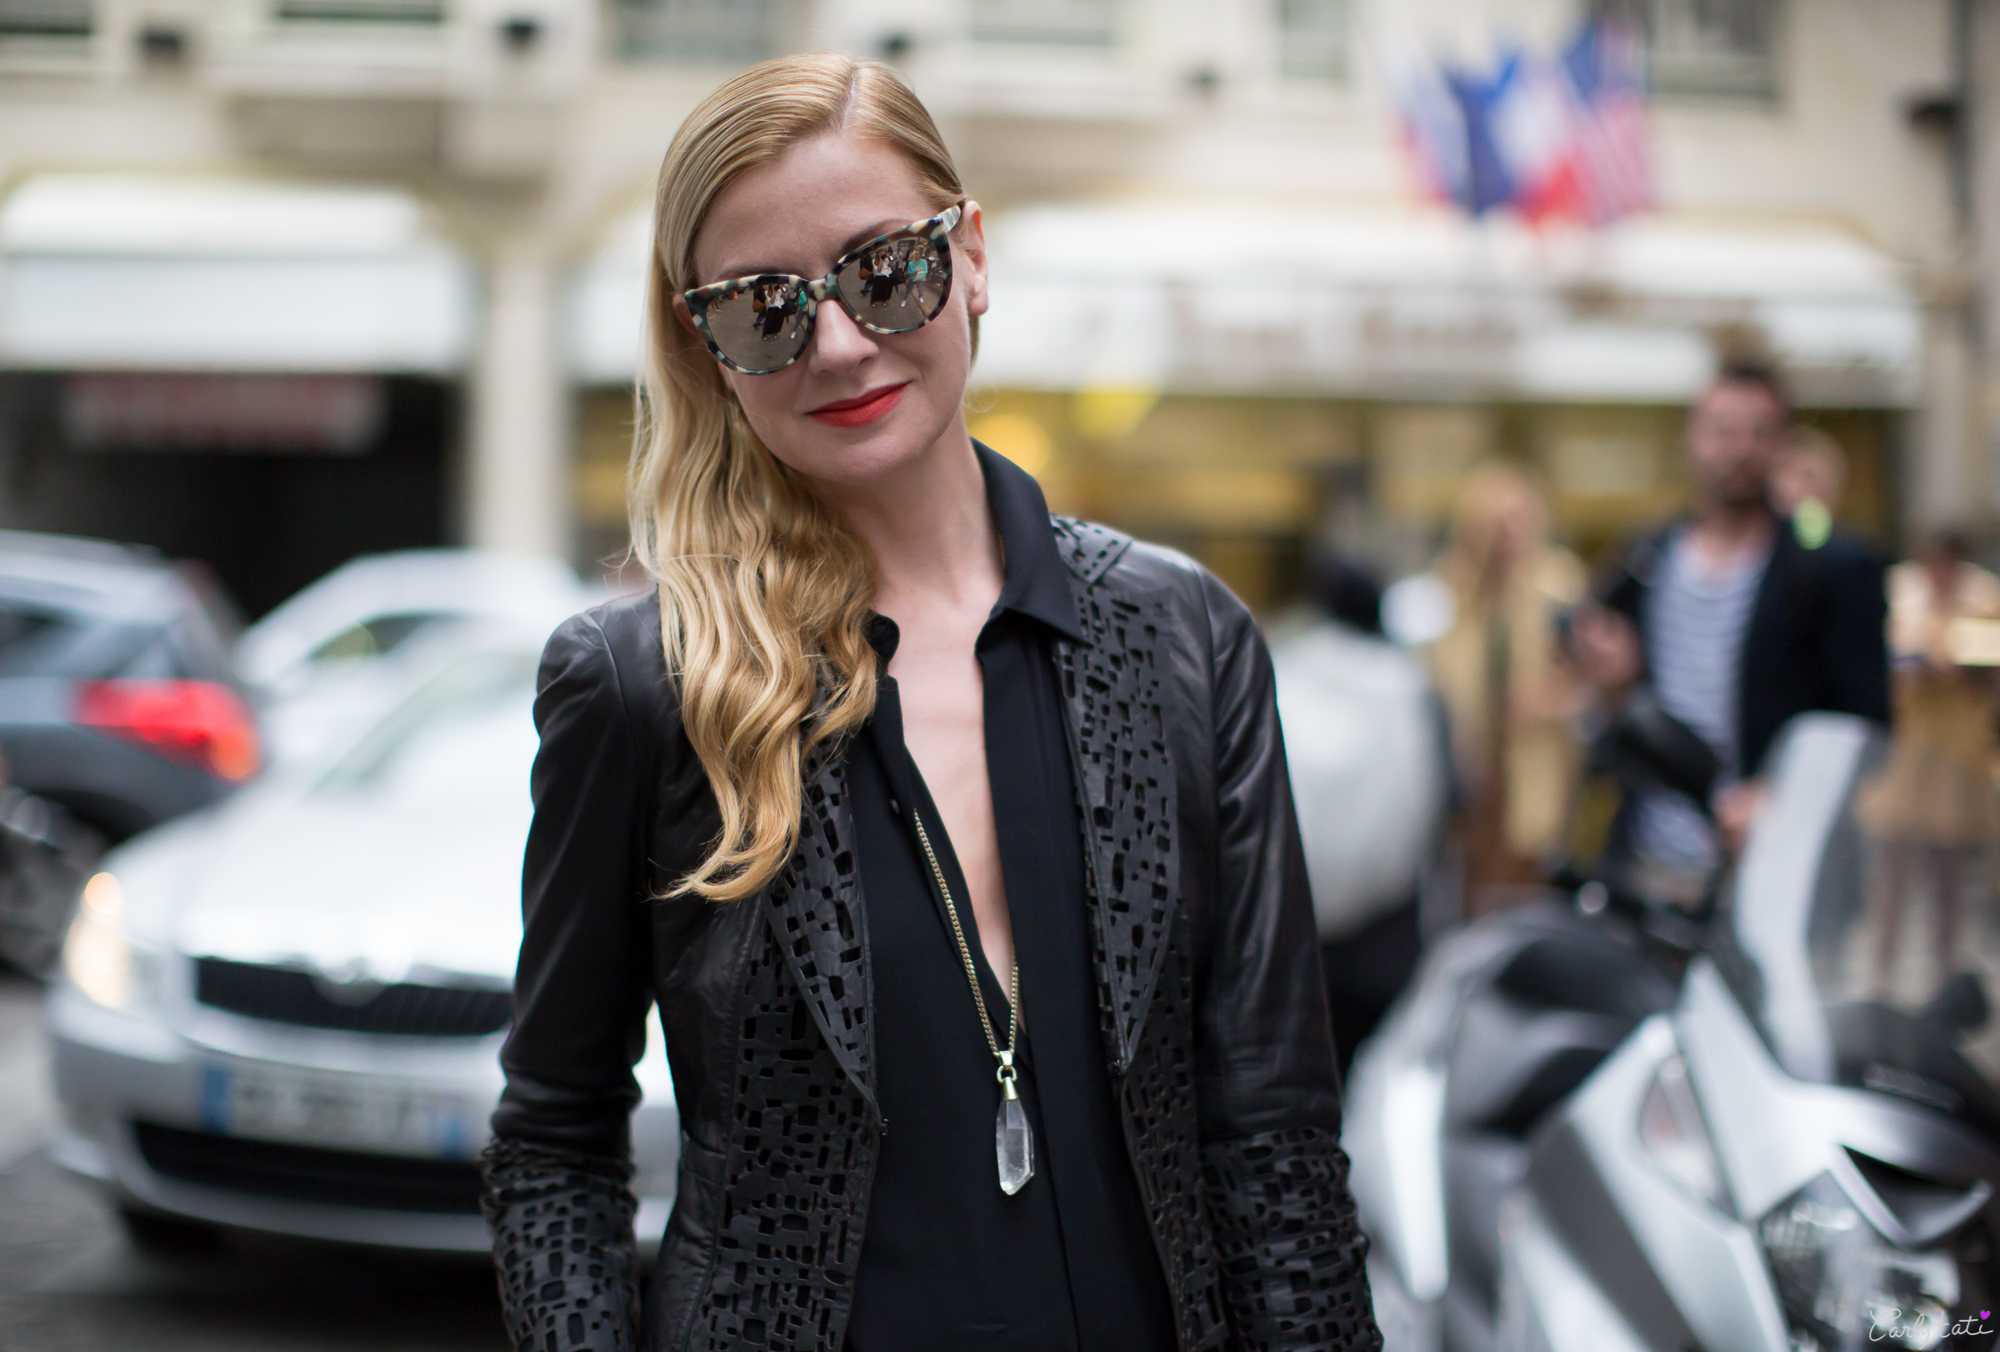 classic style fashion week couture street style Lets Talk Street Style At Fashion Week!